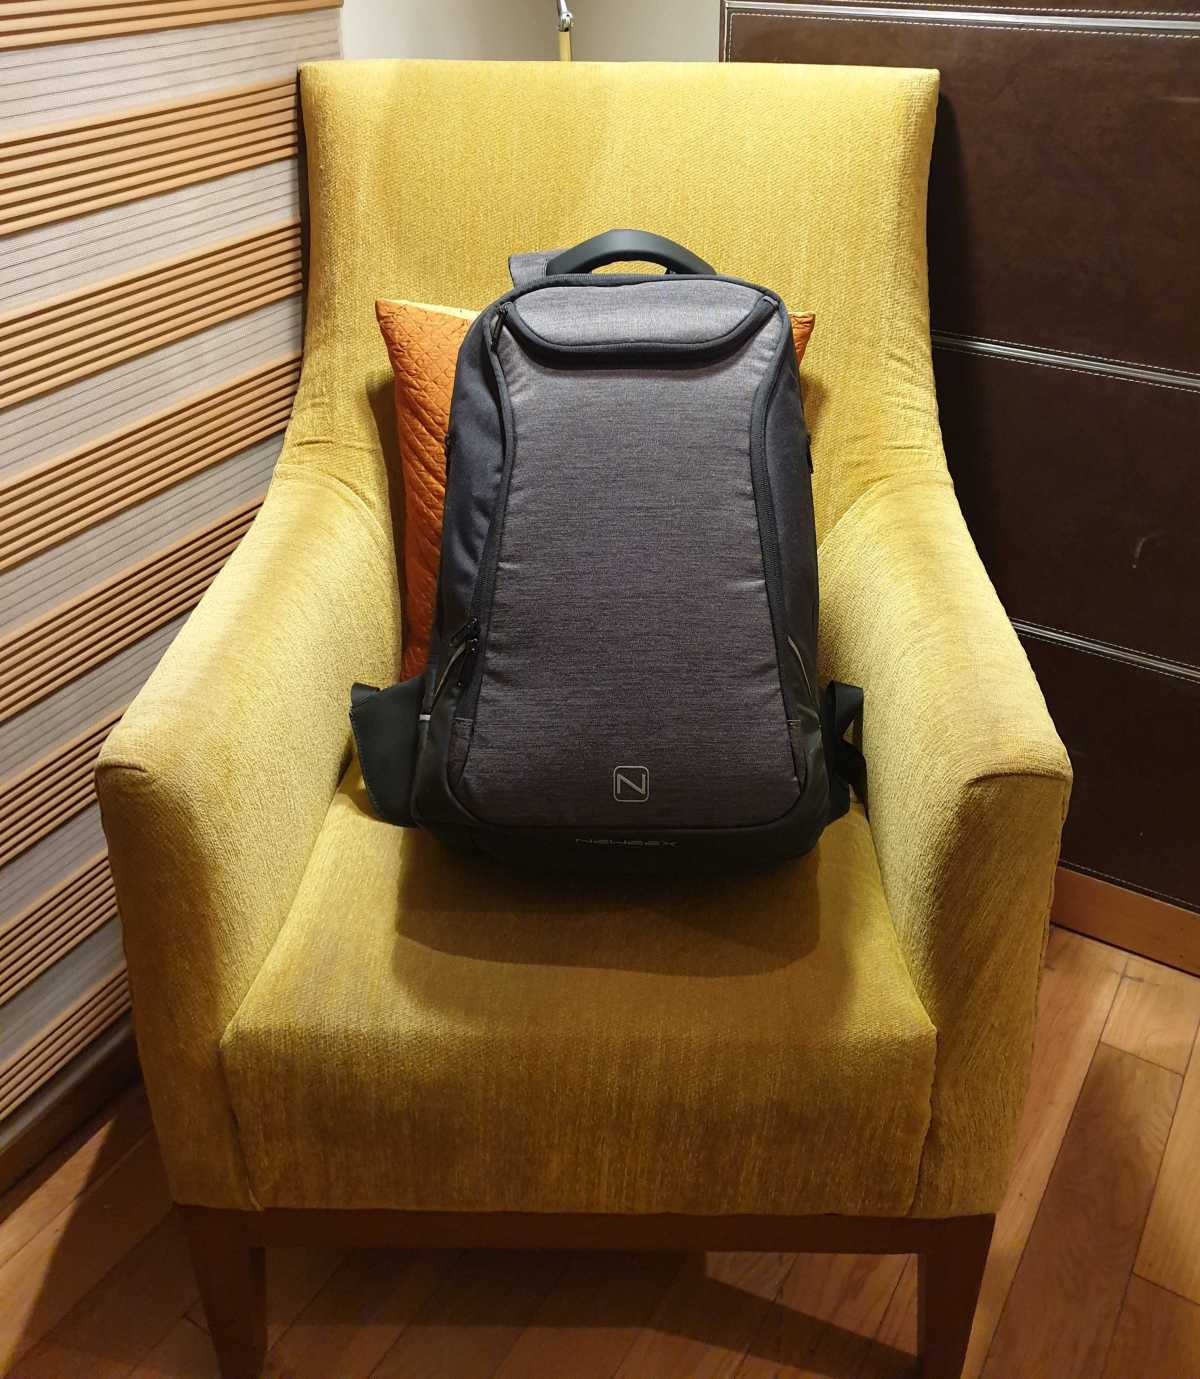 Neweex Backpack Review - Now you can Travel with Style! - 6